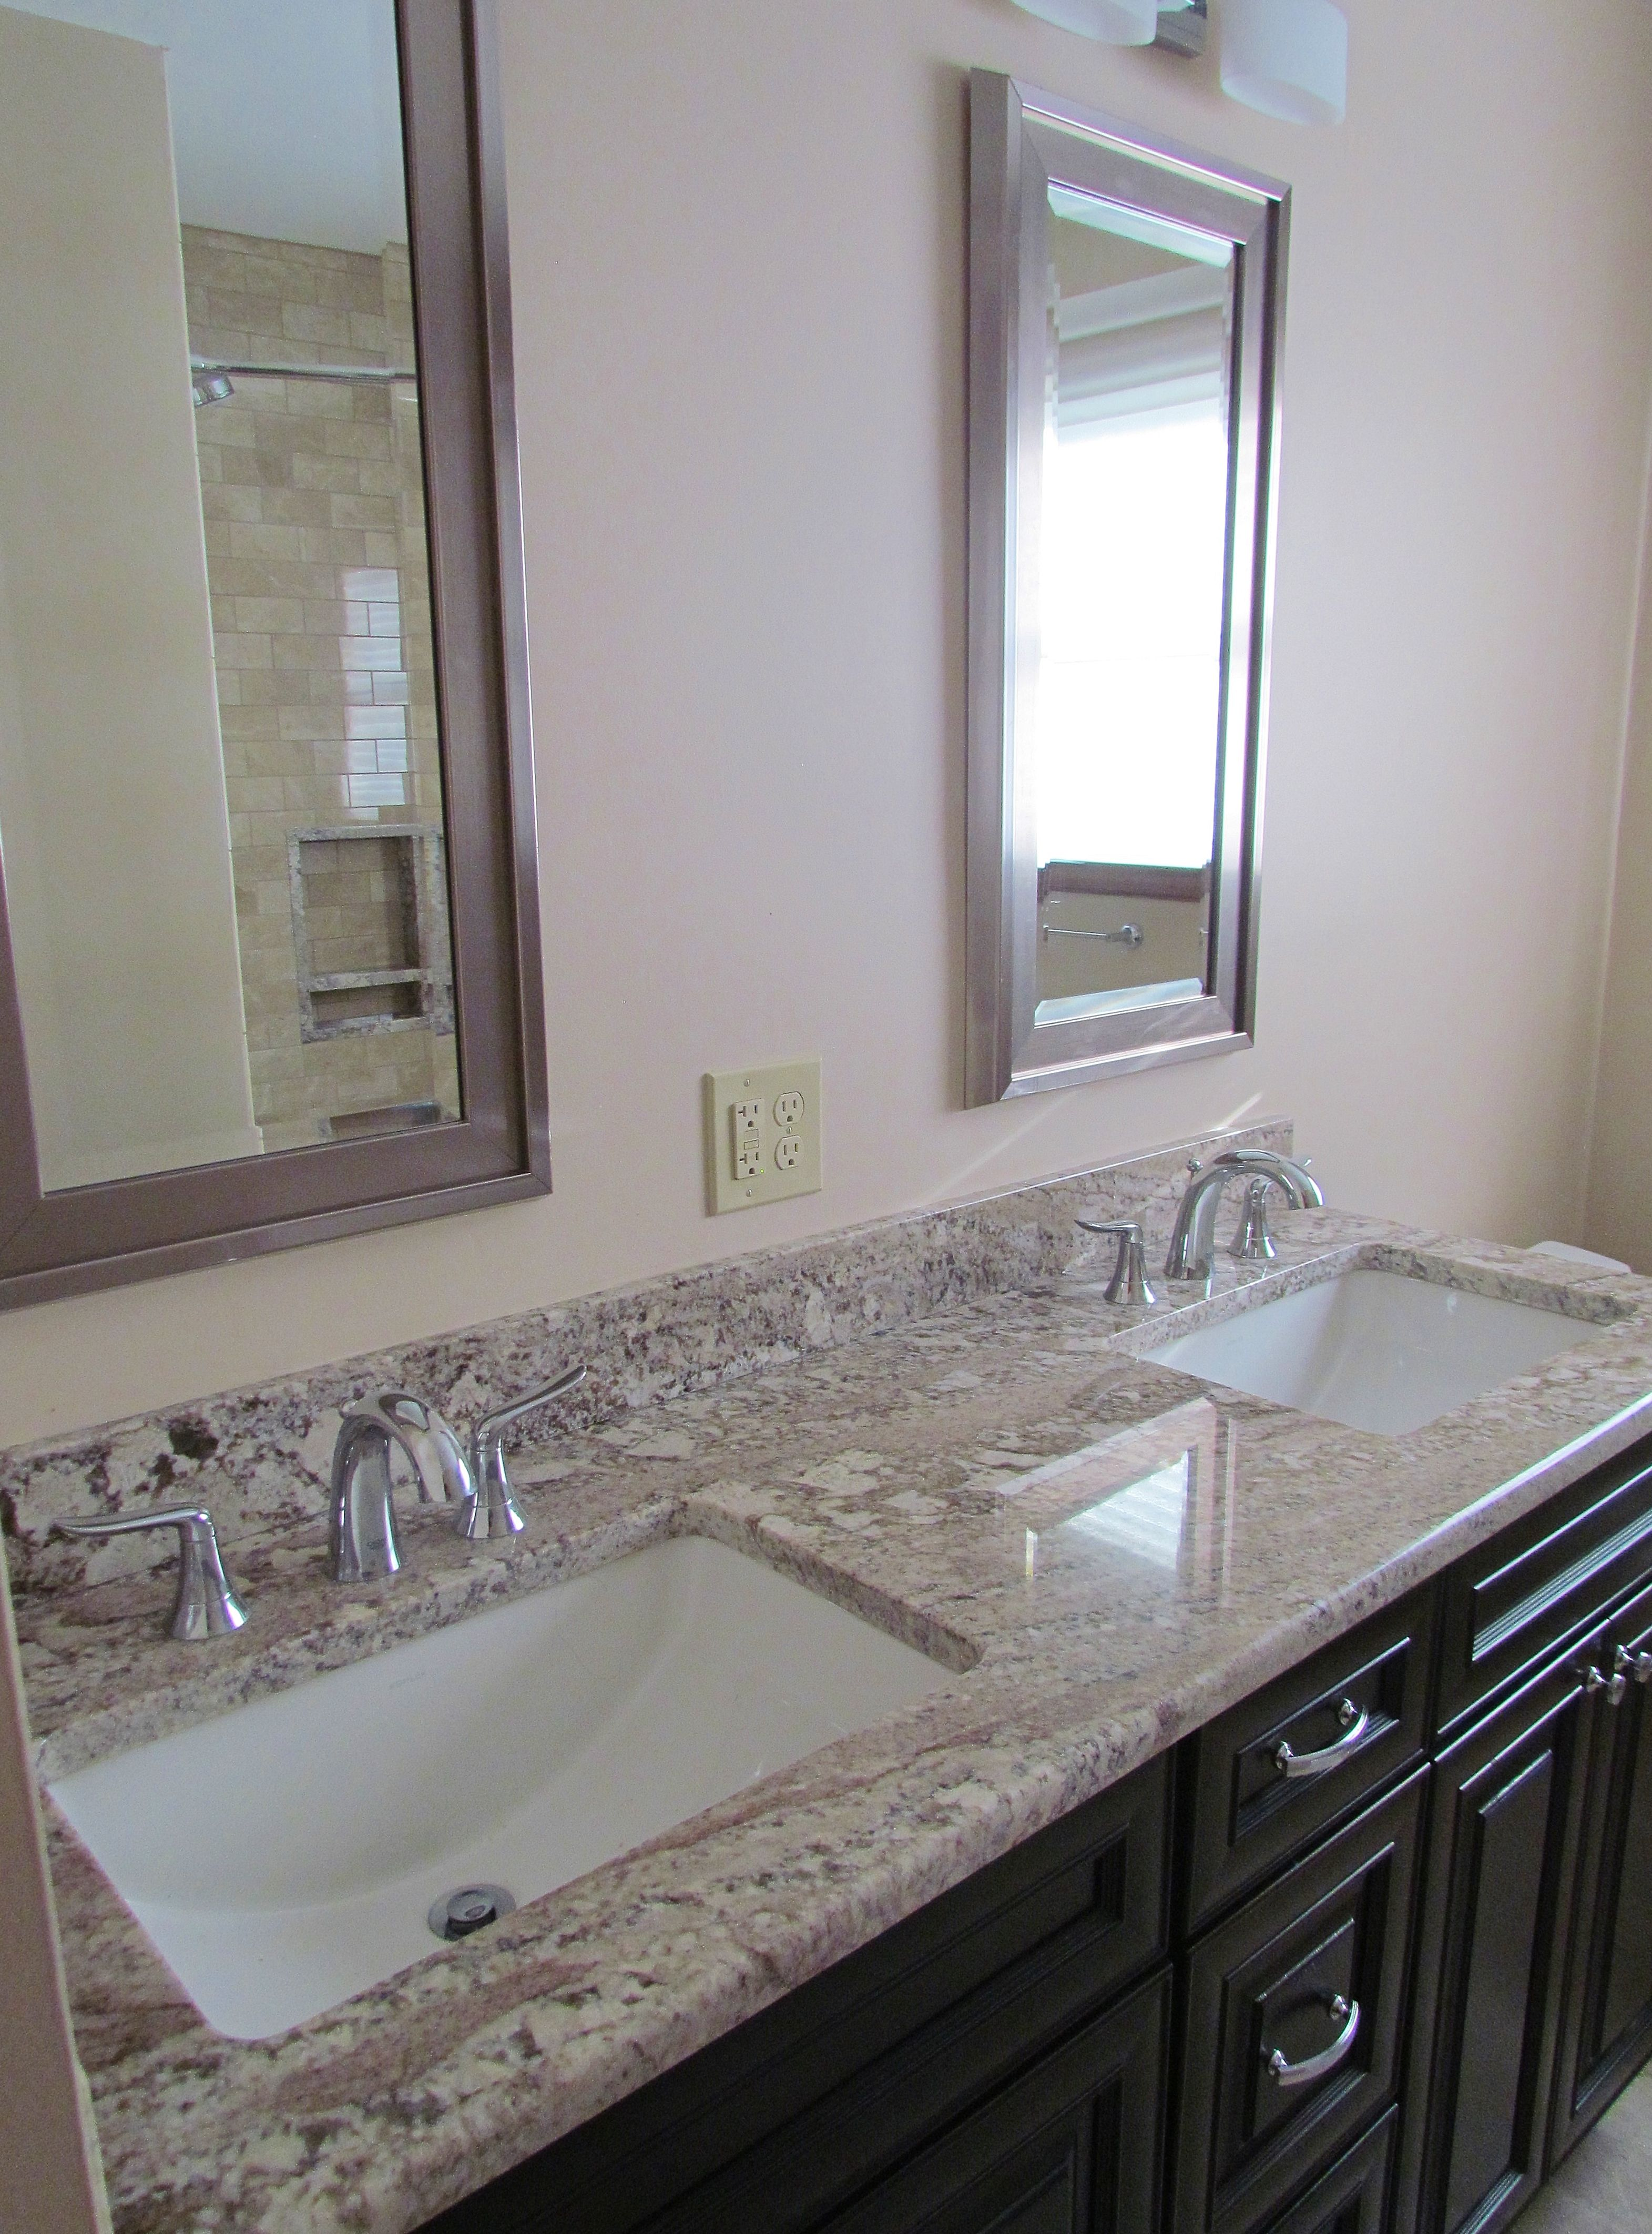 Discount Granite Countertops Nj Elegant White Granite Vanity Countertop On Dark Espresso